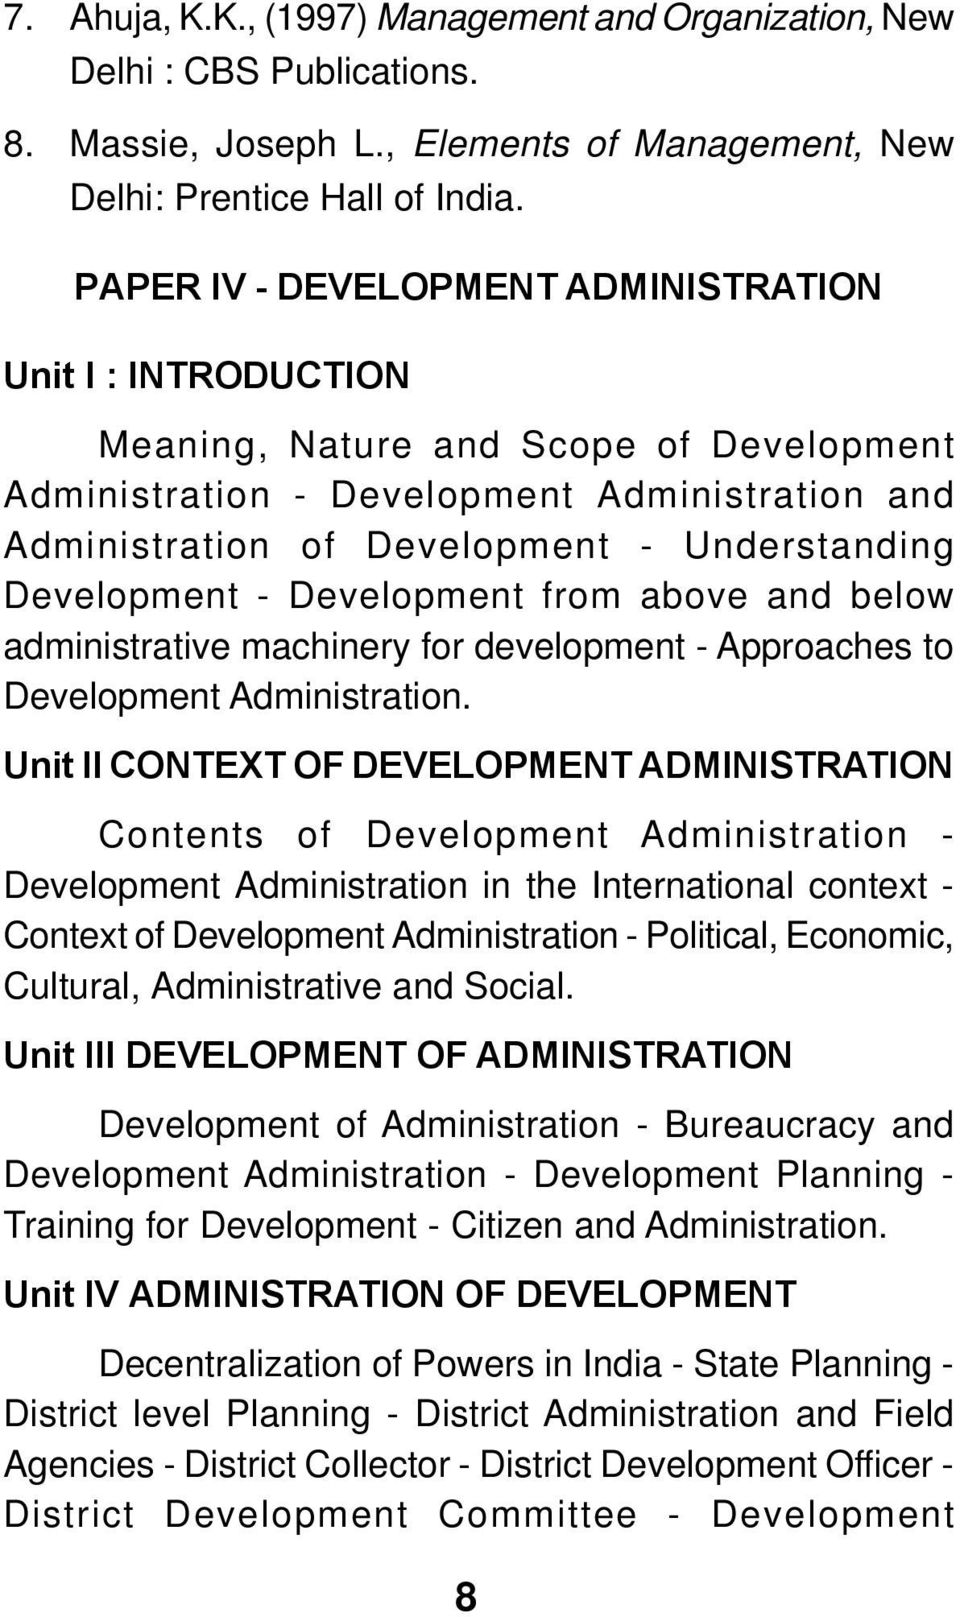 PAPER IV - DEVELOPMENT ADMINISTRATION Meaning, Nature and Scope of Development Administration - Development Administration and Administration of Development - Understanding Development - Development